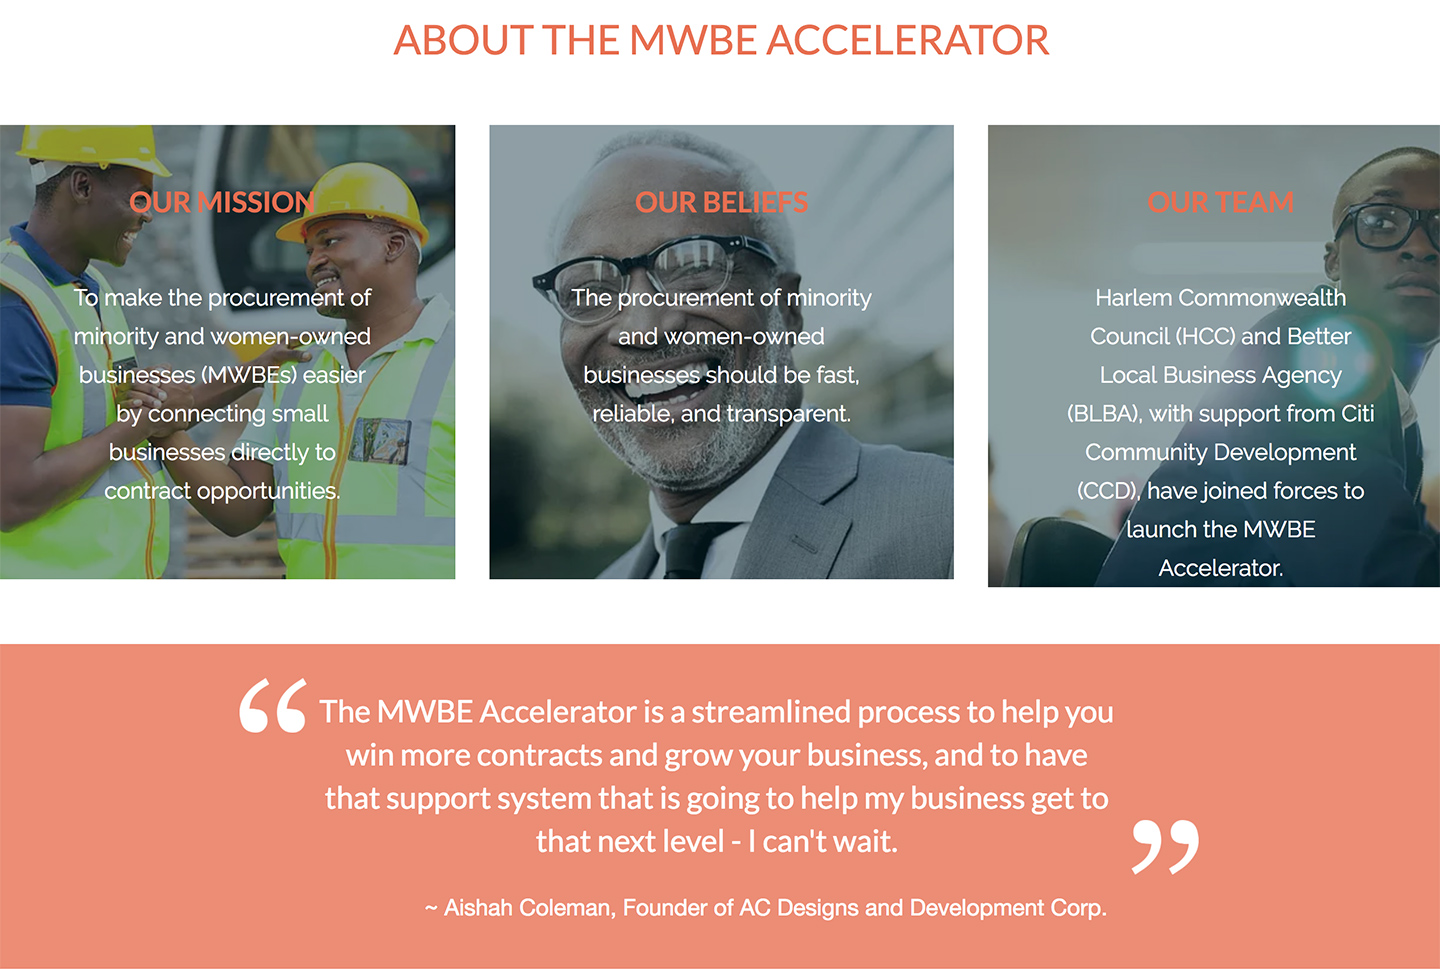 Harlem Commonwealth Council MWBE Accelerator: MWBE Accelerator About Us Silos